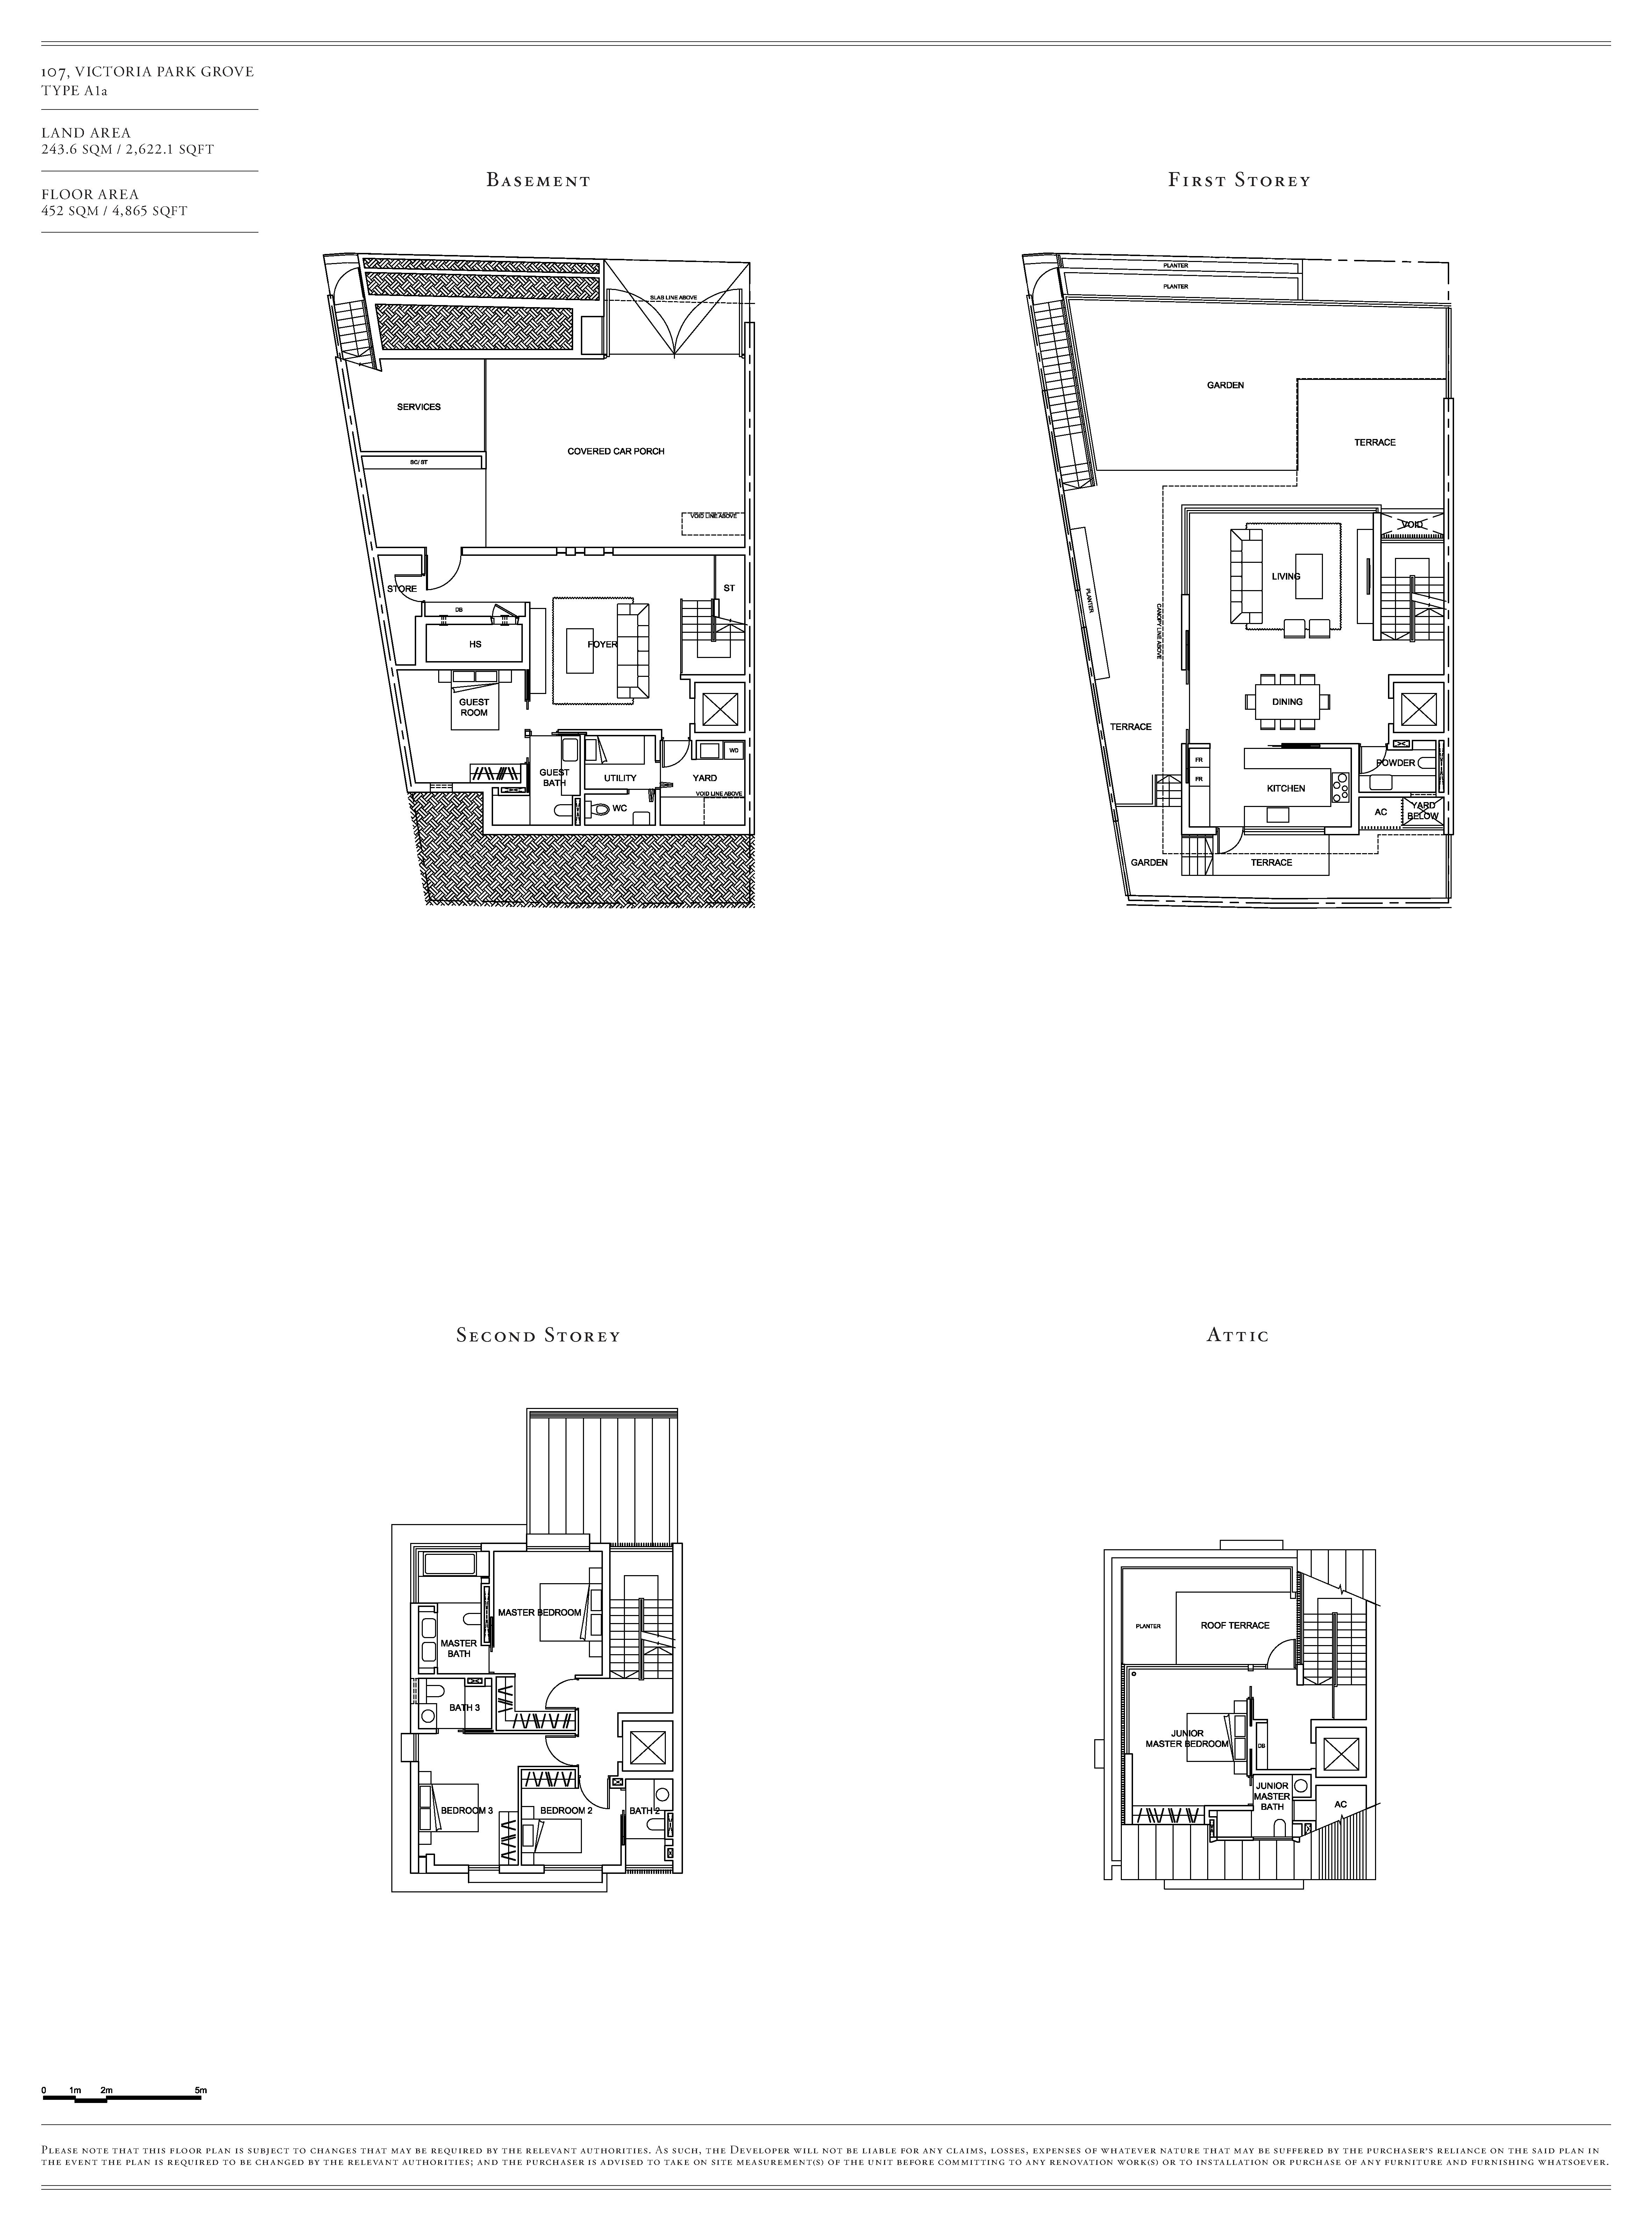 Victoria Park Villas House 107 Type A1a Floor Plans